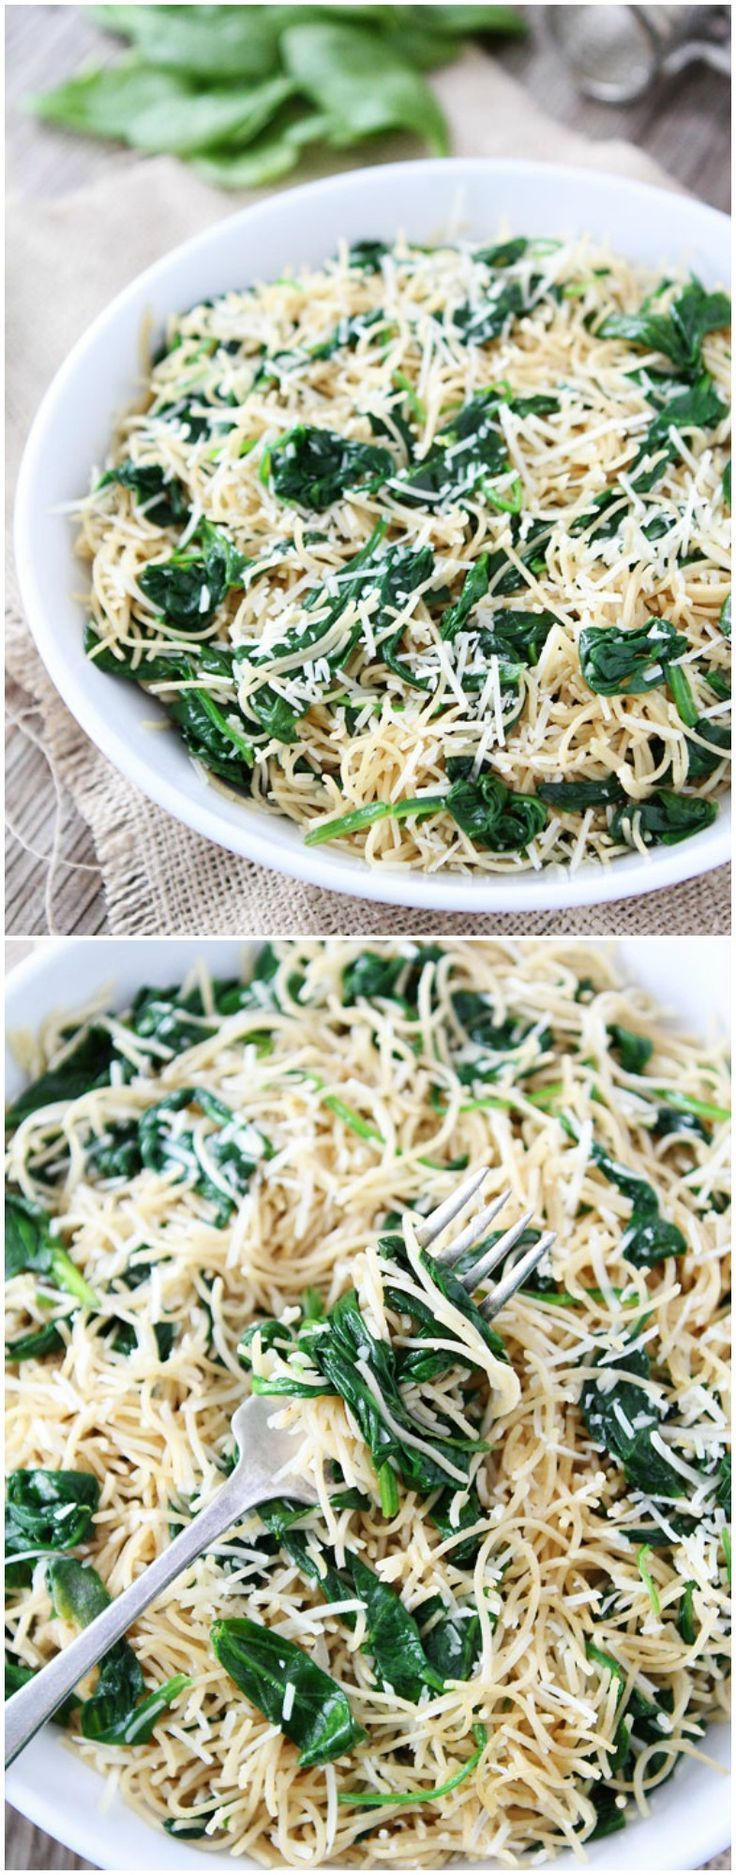 5-Ingredient Spinach Parmesan Pasta Recipe on http://twopeasandtheirpod.com Love this quick and easy pasta dish!